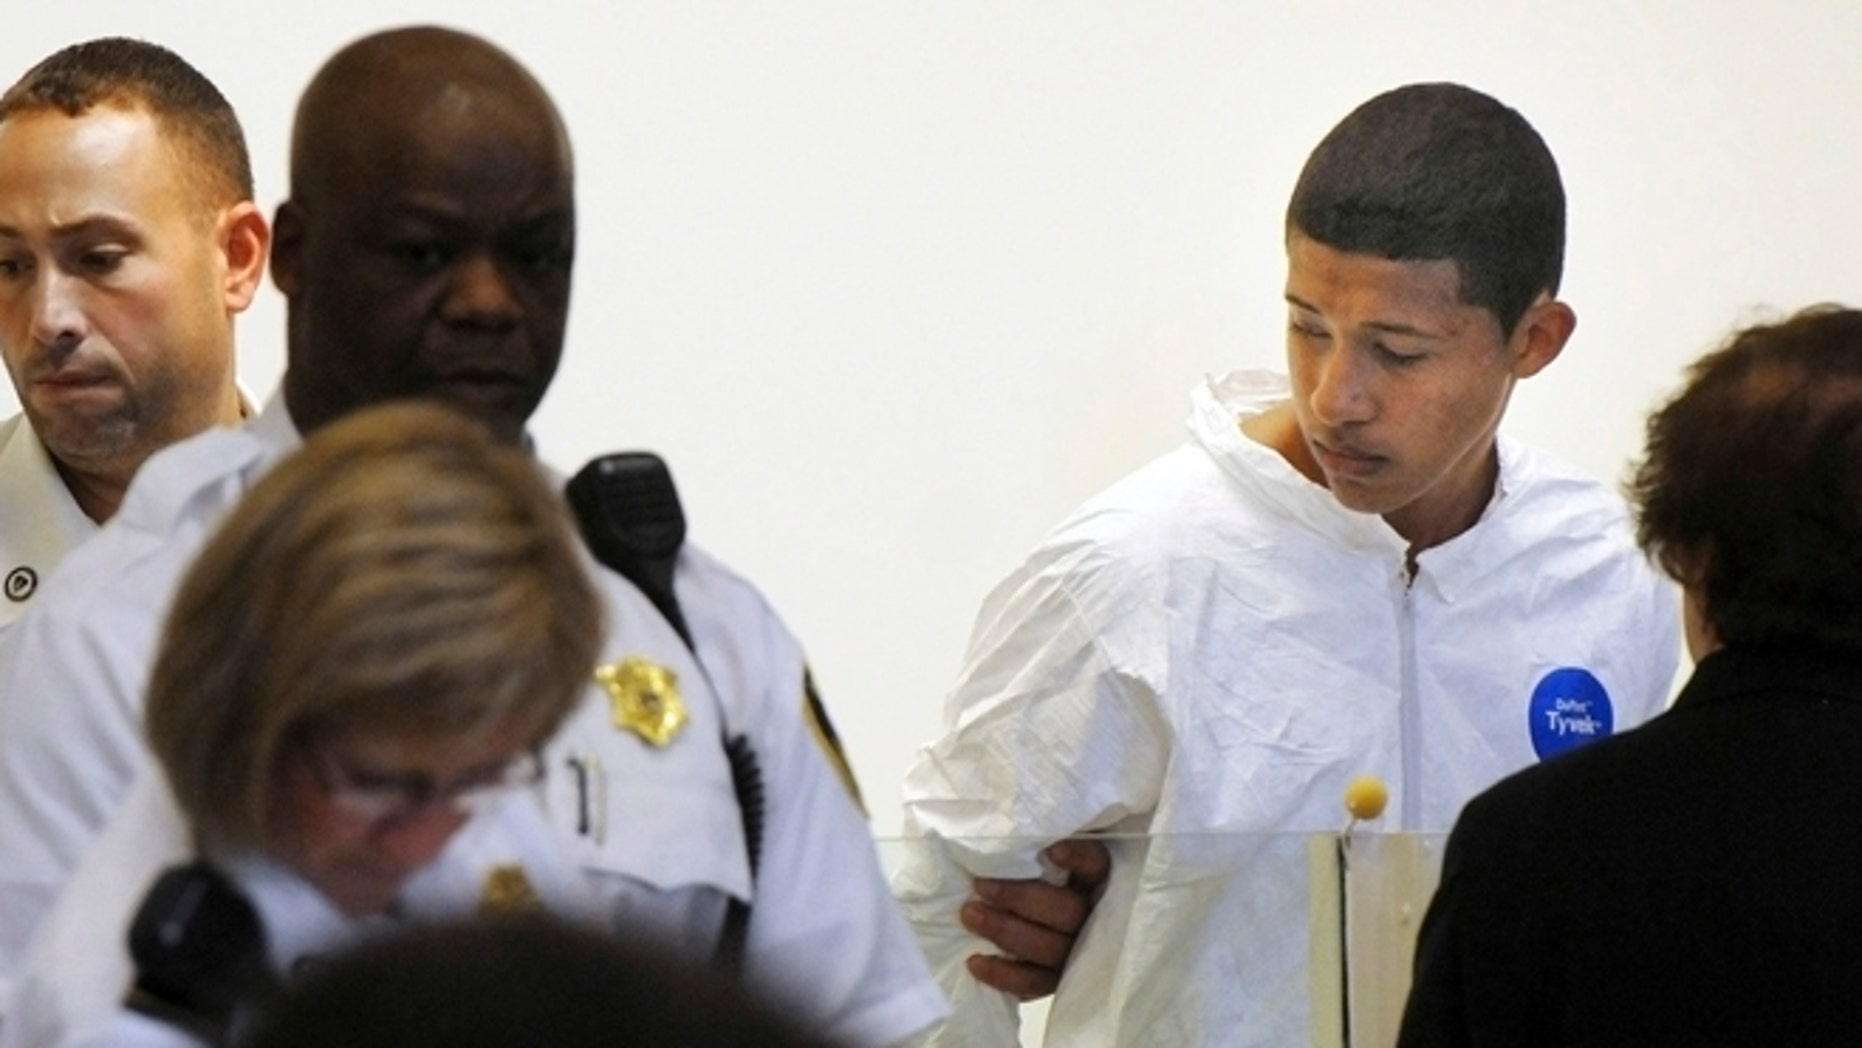 FILE 2013: Philip Chism, 14, stands during his arraignment for the death of Danvers High School teacher Colleen Ritzer in Salem District Court in Boston.